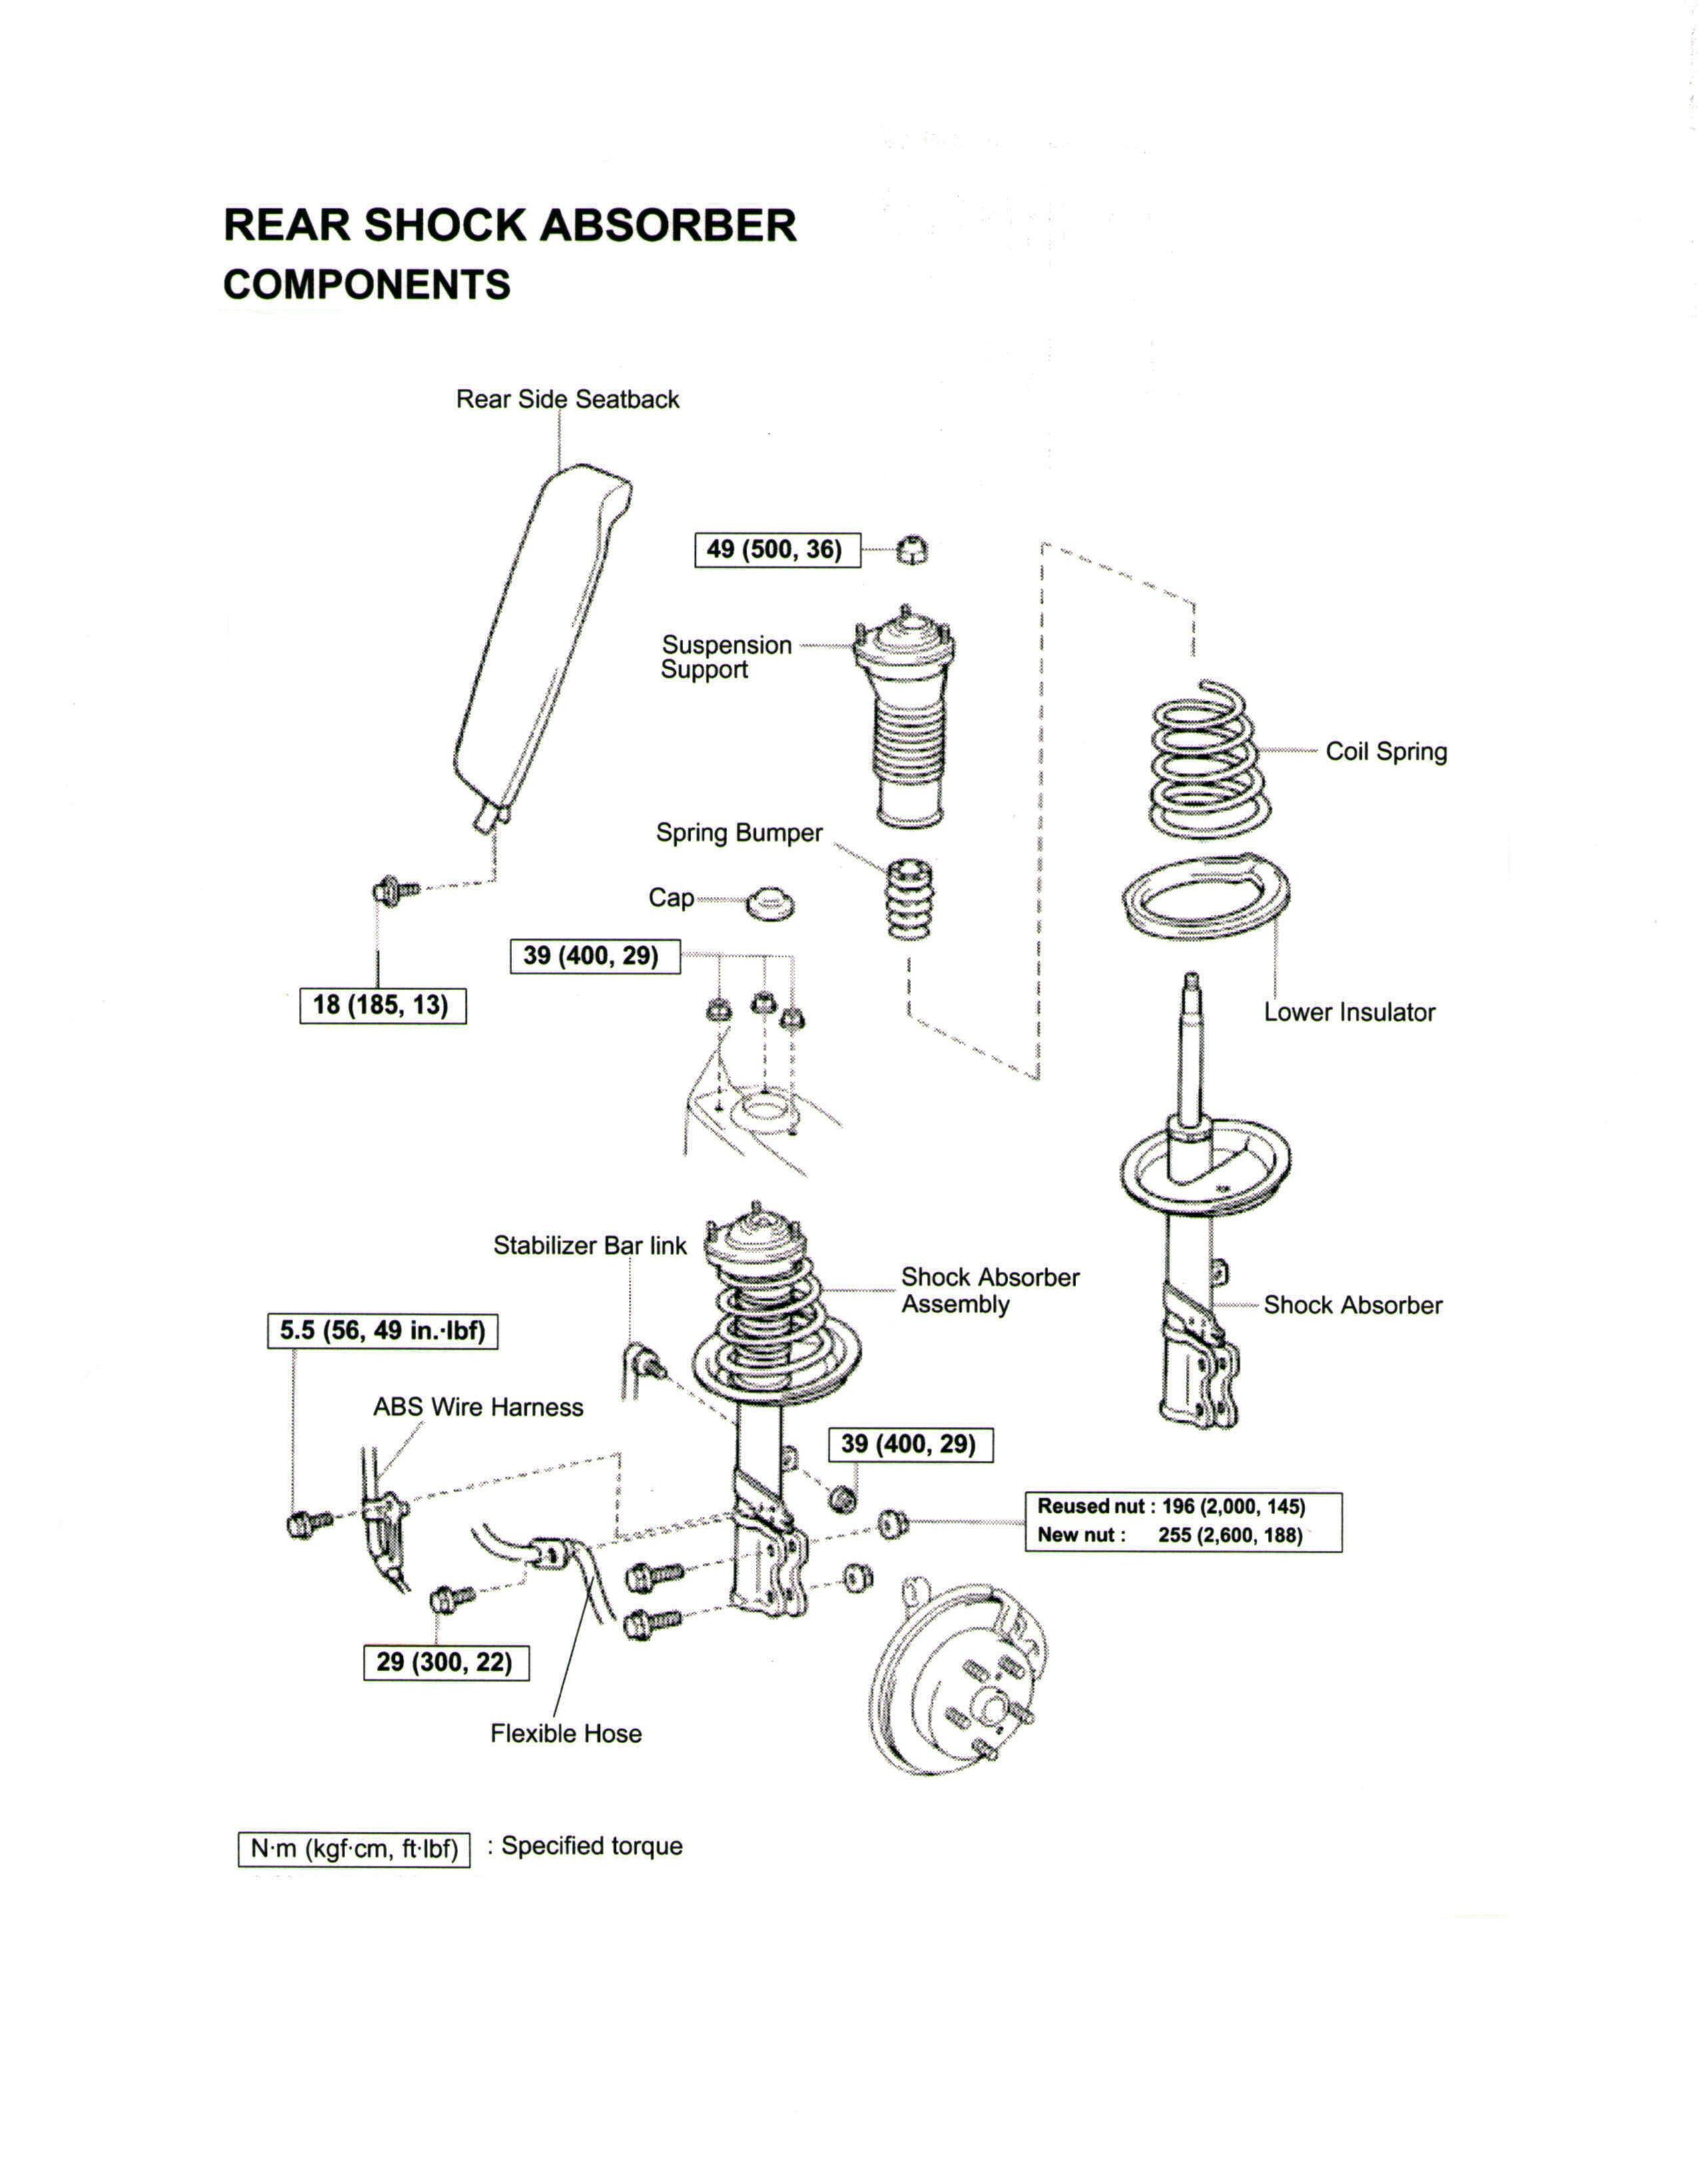 Toyota Camry 2007 Engine Diagram Replacing the Rear Strut and or Coil Spring On A toyota Camry Of Toyota Camry 2007 Engine Diagram